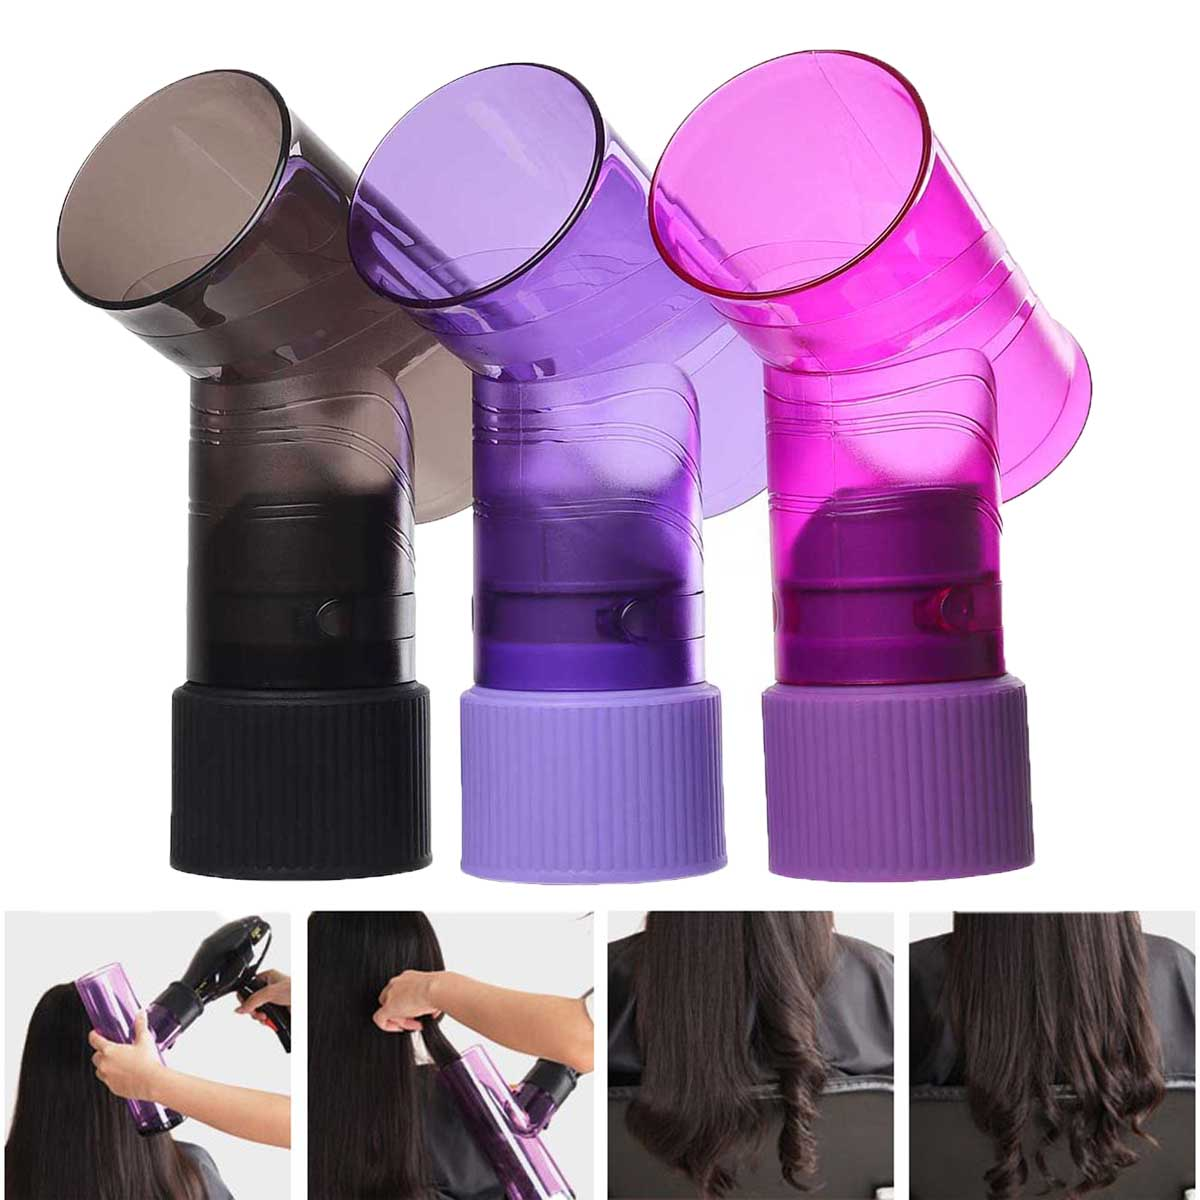 3 Colors Hair Dryer Diffuser Magic Wind Spin Curl Blow Dryer Hair Roller Curly Curler Maker Salon Blower Hairstyling Tool